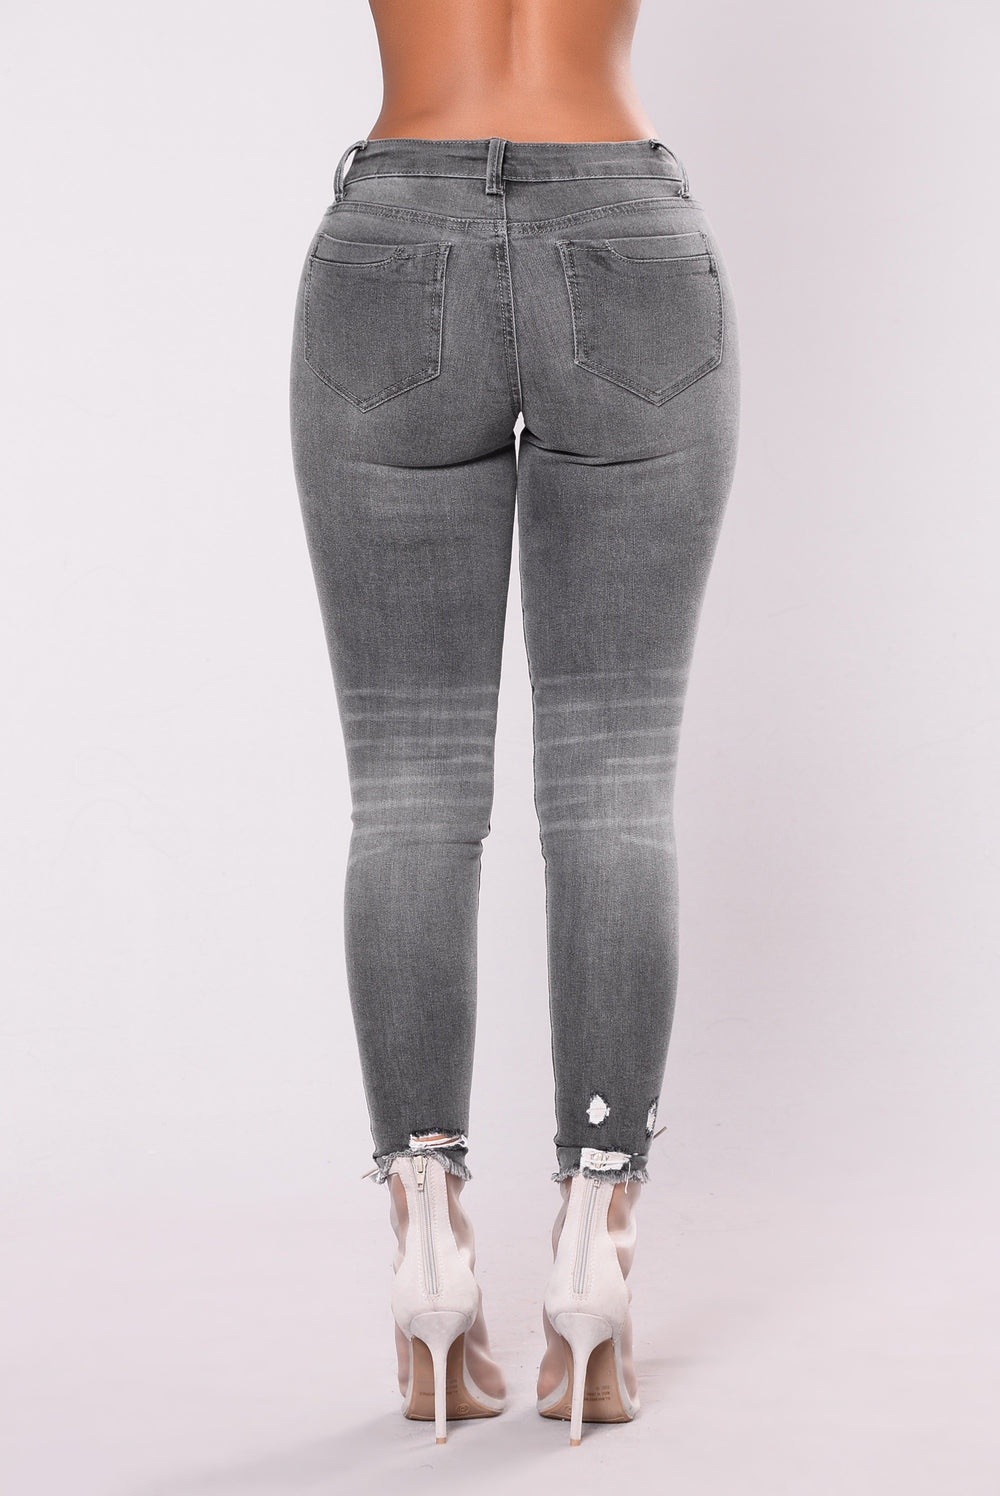 Nervous Around You Jeans - Grey Wash